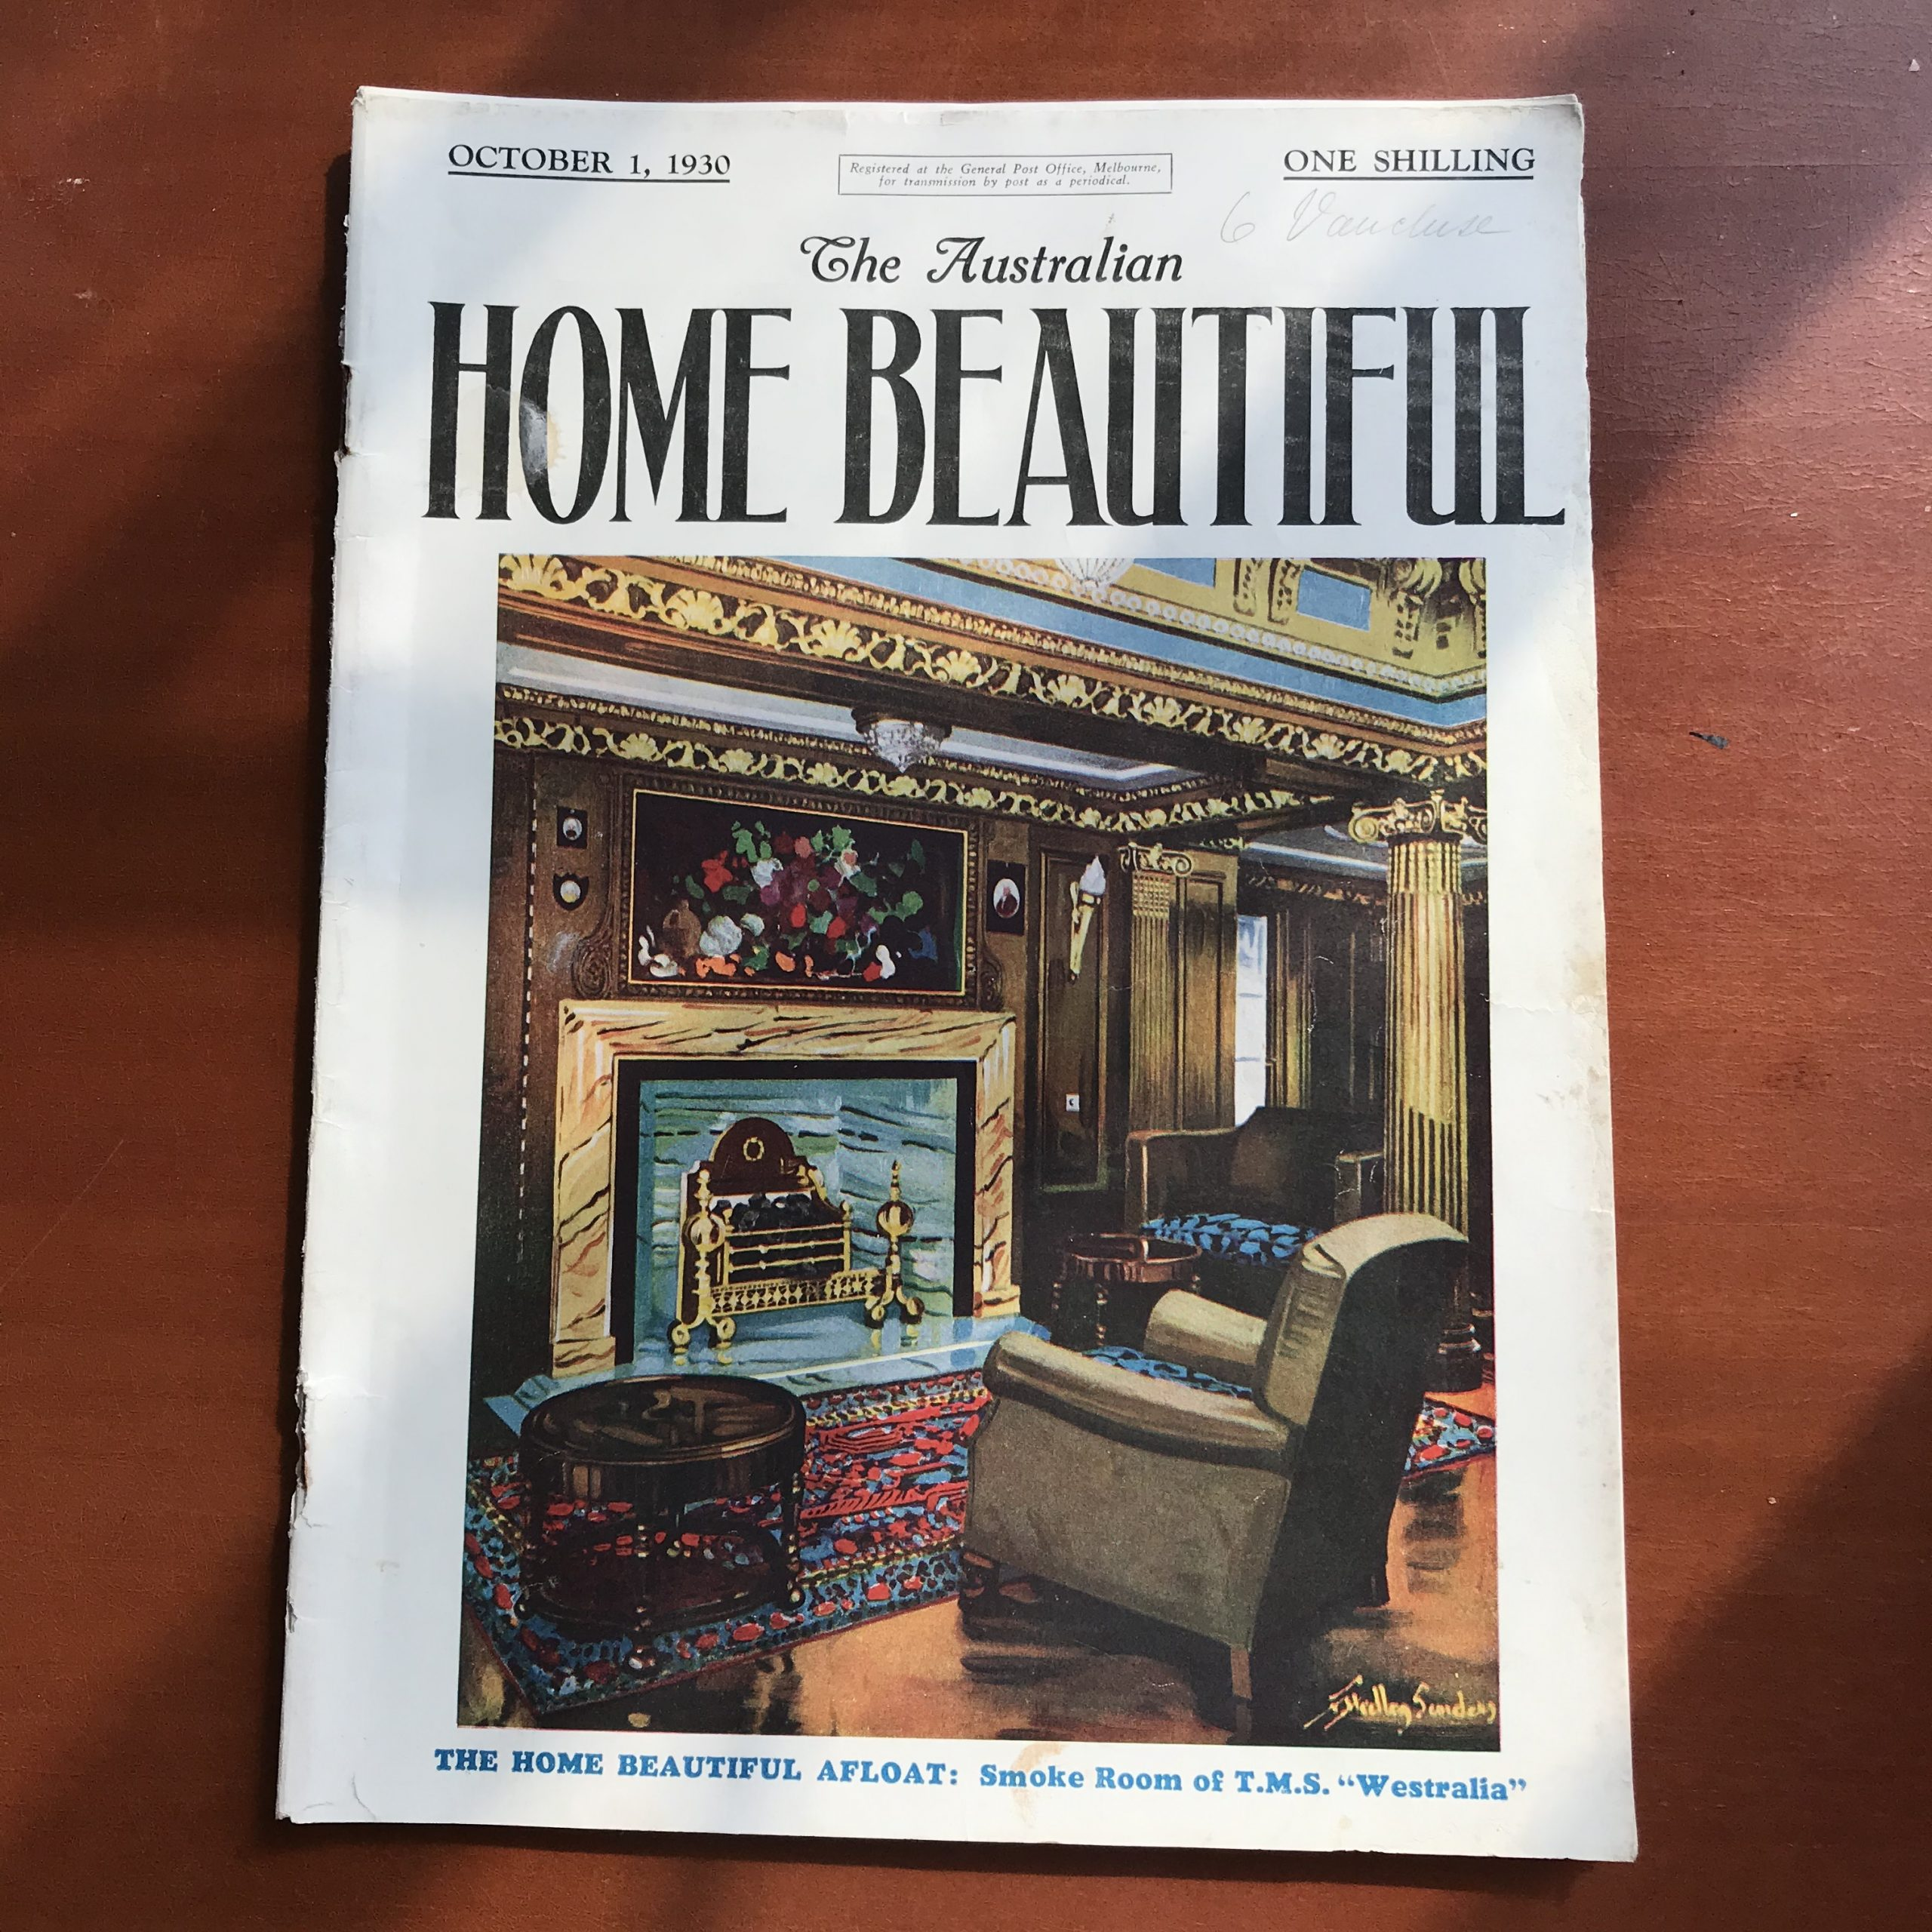 A copy of the October 1930 Home Beautiful magazine